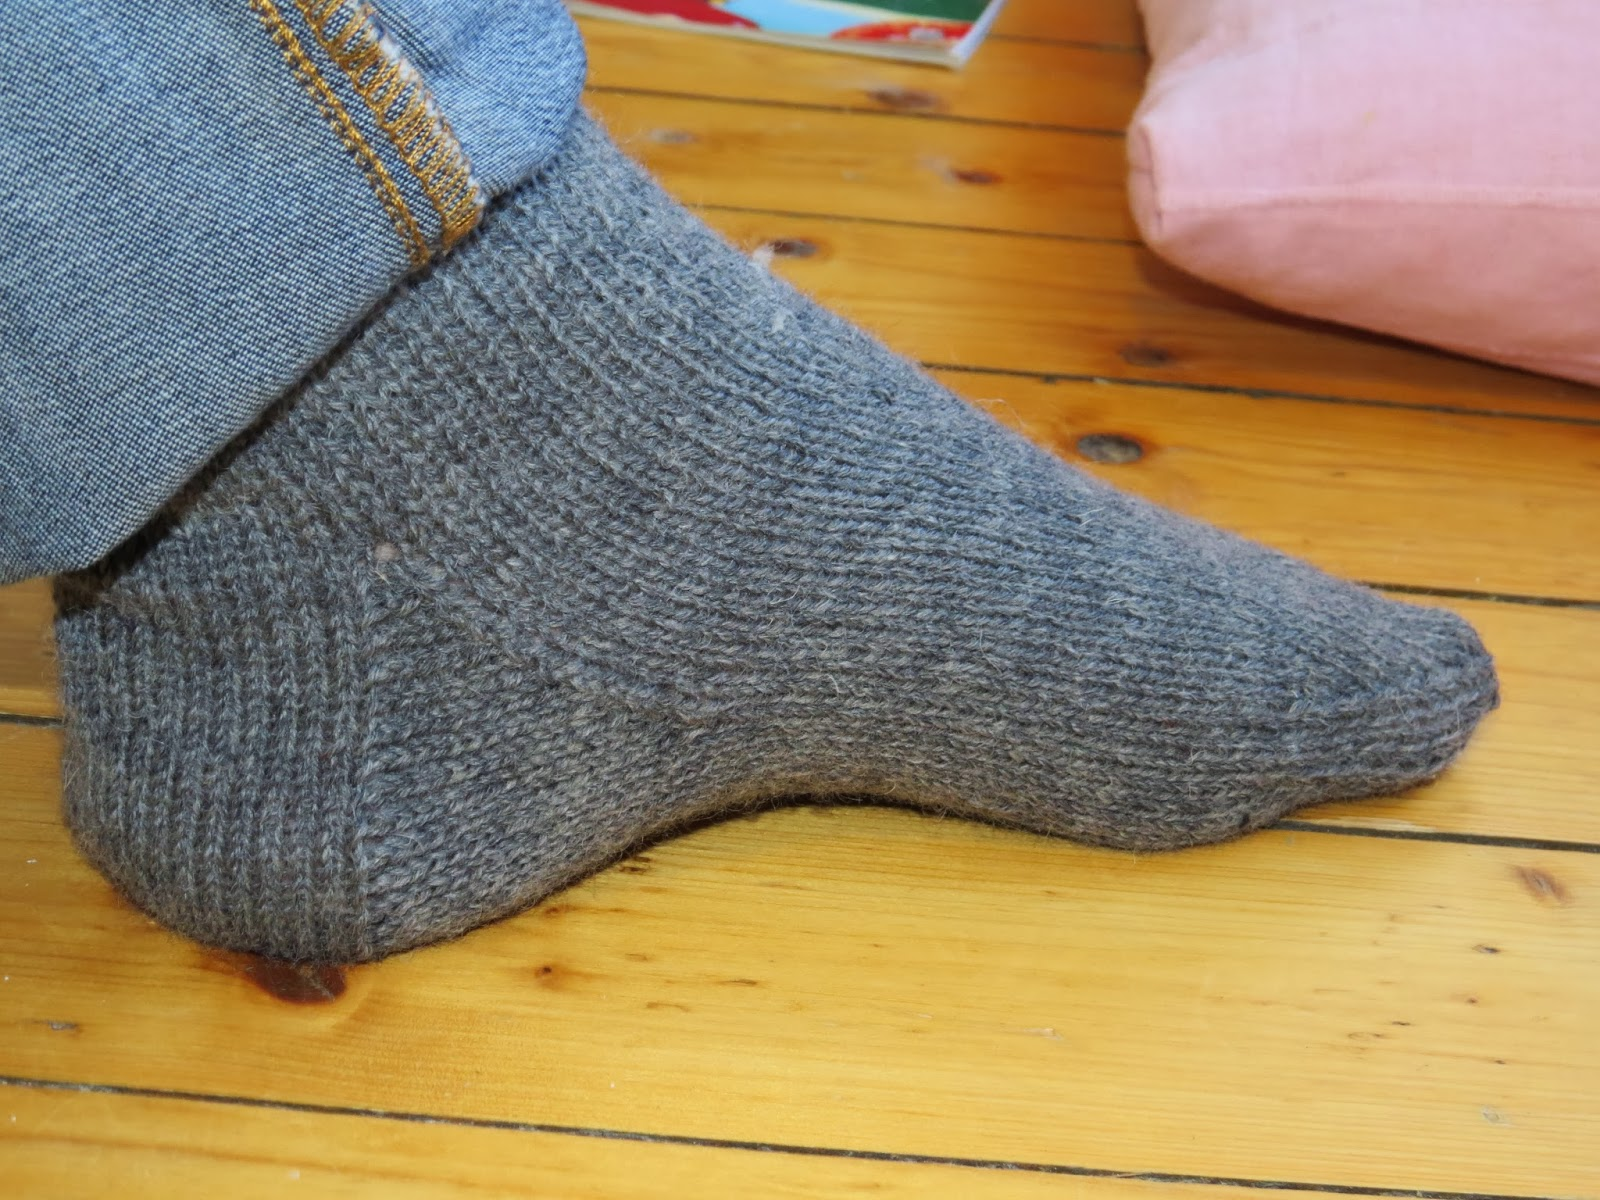 Basic Knitting Stitches Ssk : A colourful life: January socks - plain and simple